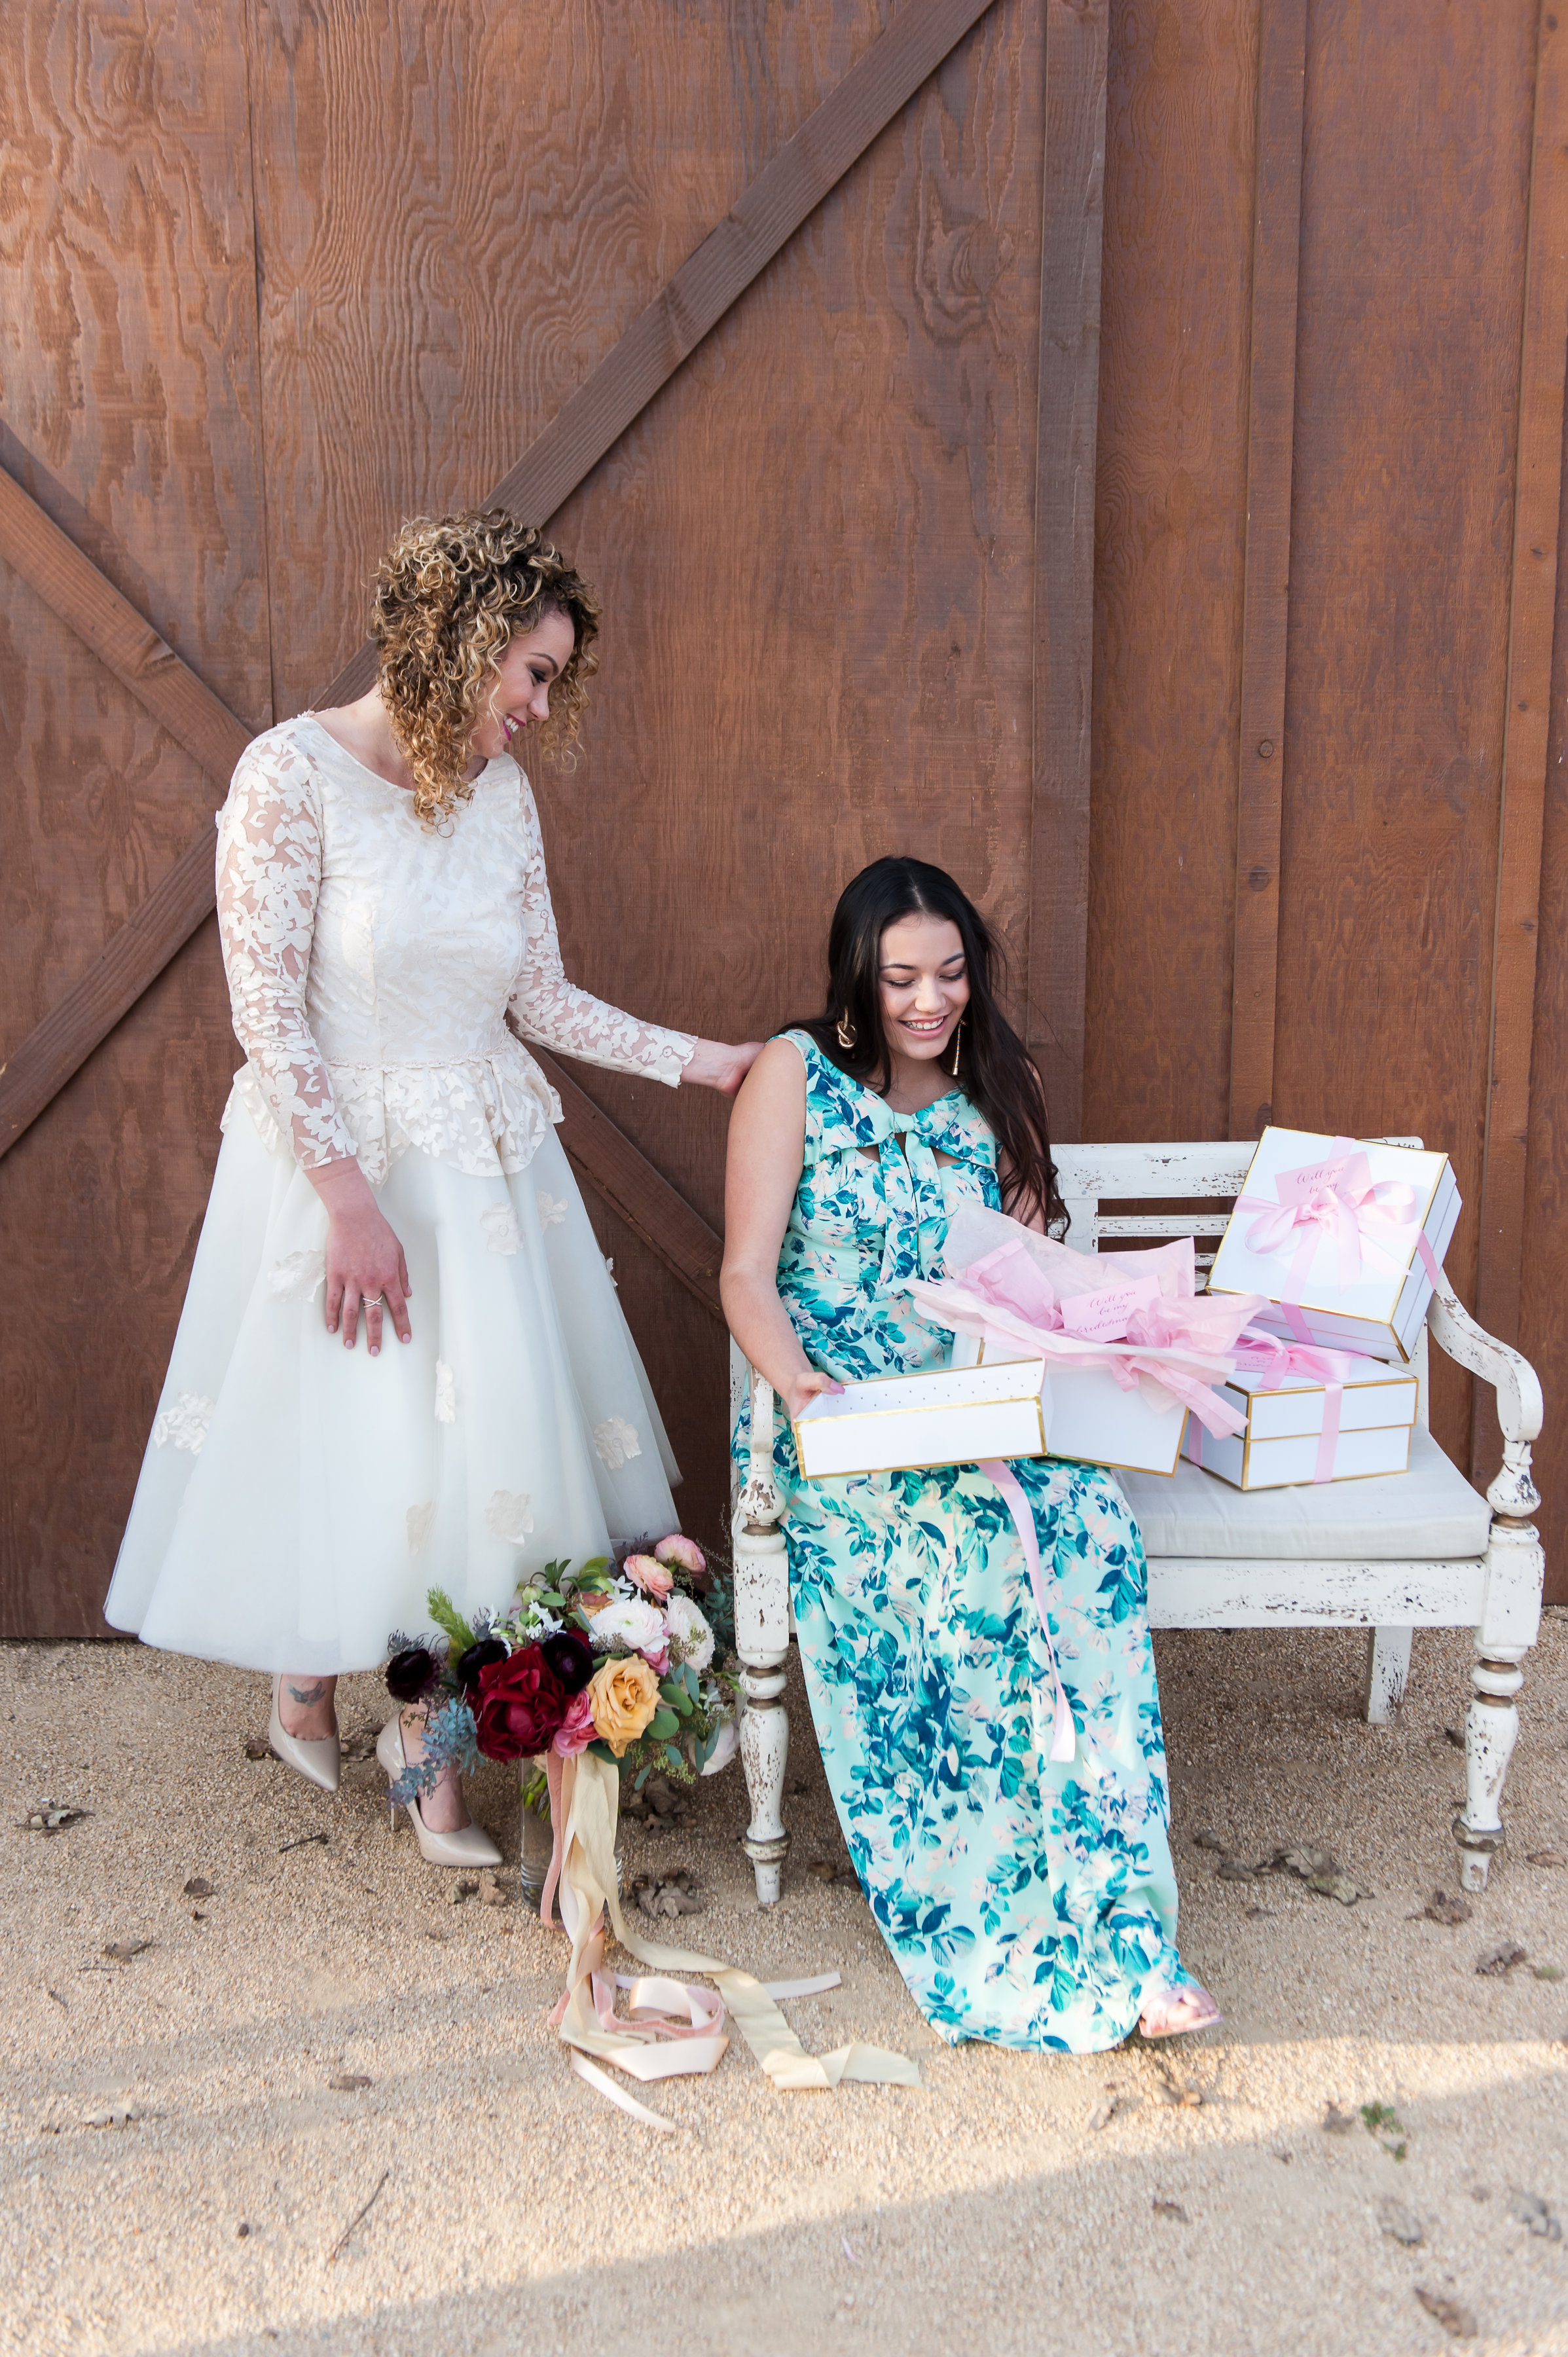 kim baker beauty luxury lifestyle and bridal makeup artist san jose bay area california tea party bridal shower styled shoot dancing with her blog jen vazquez photography